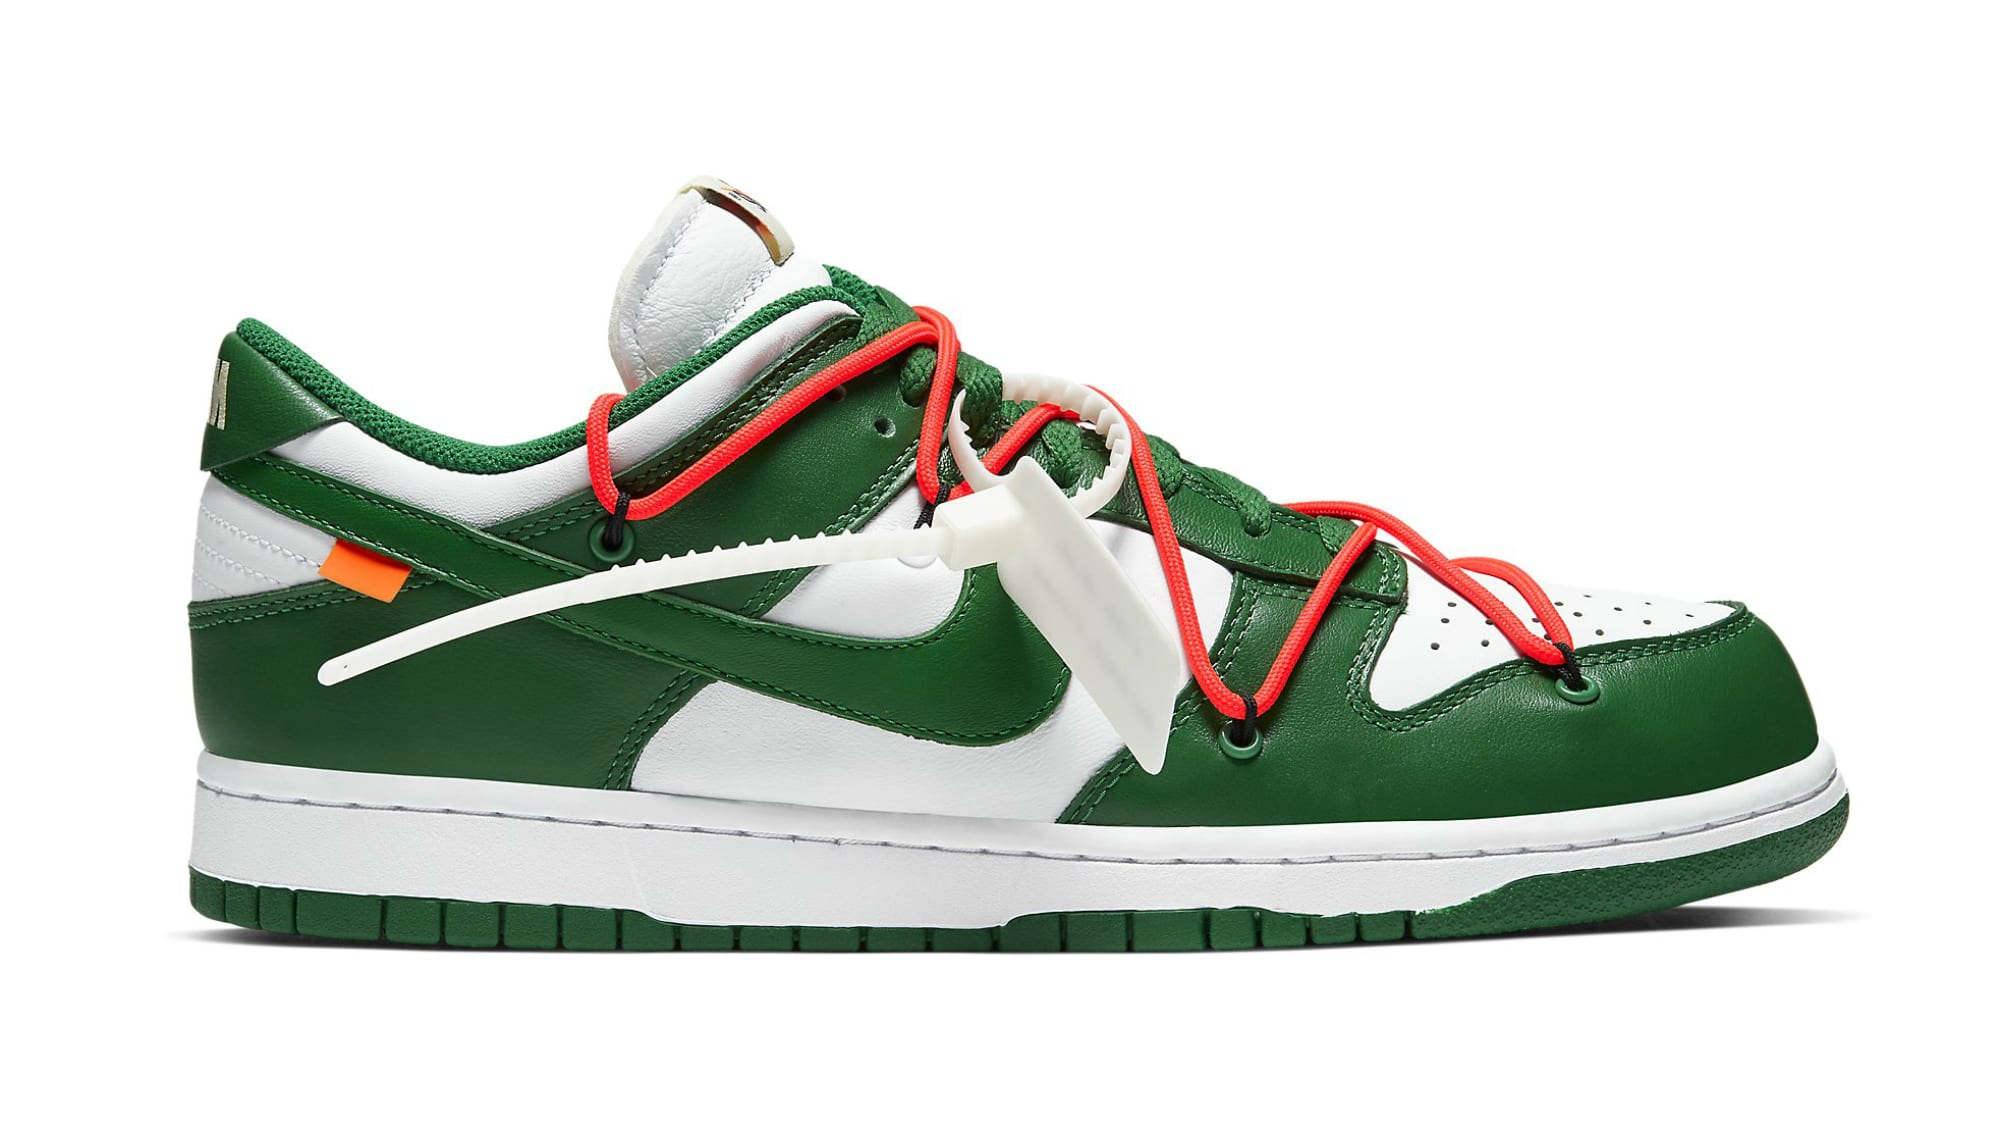 off-white-nike-dunk-low-white-pine-green-ct0856-100-release-date